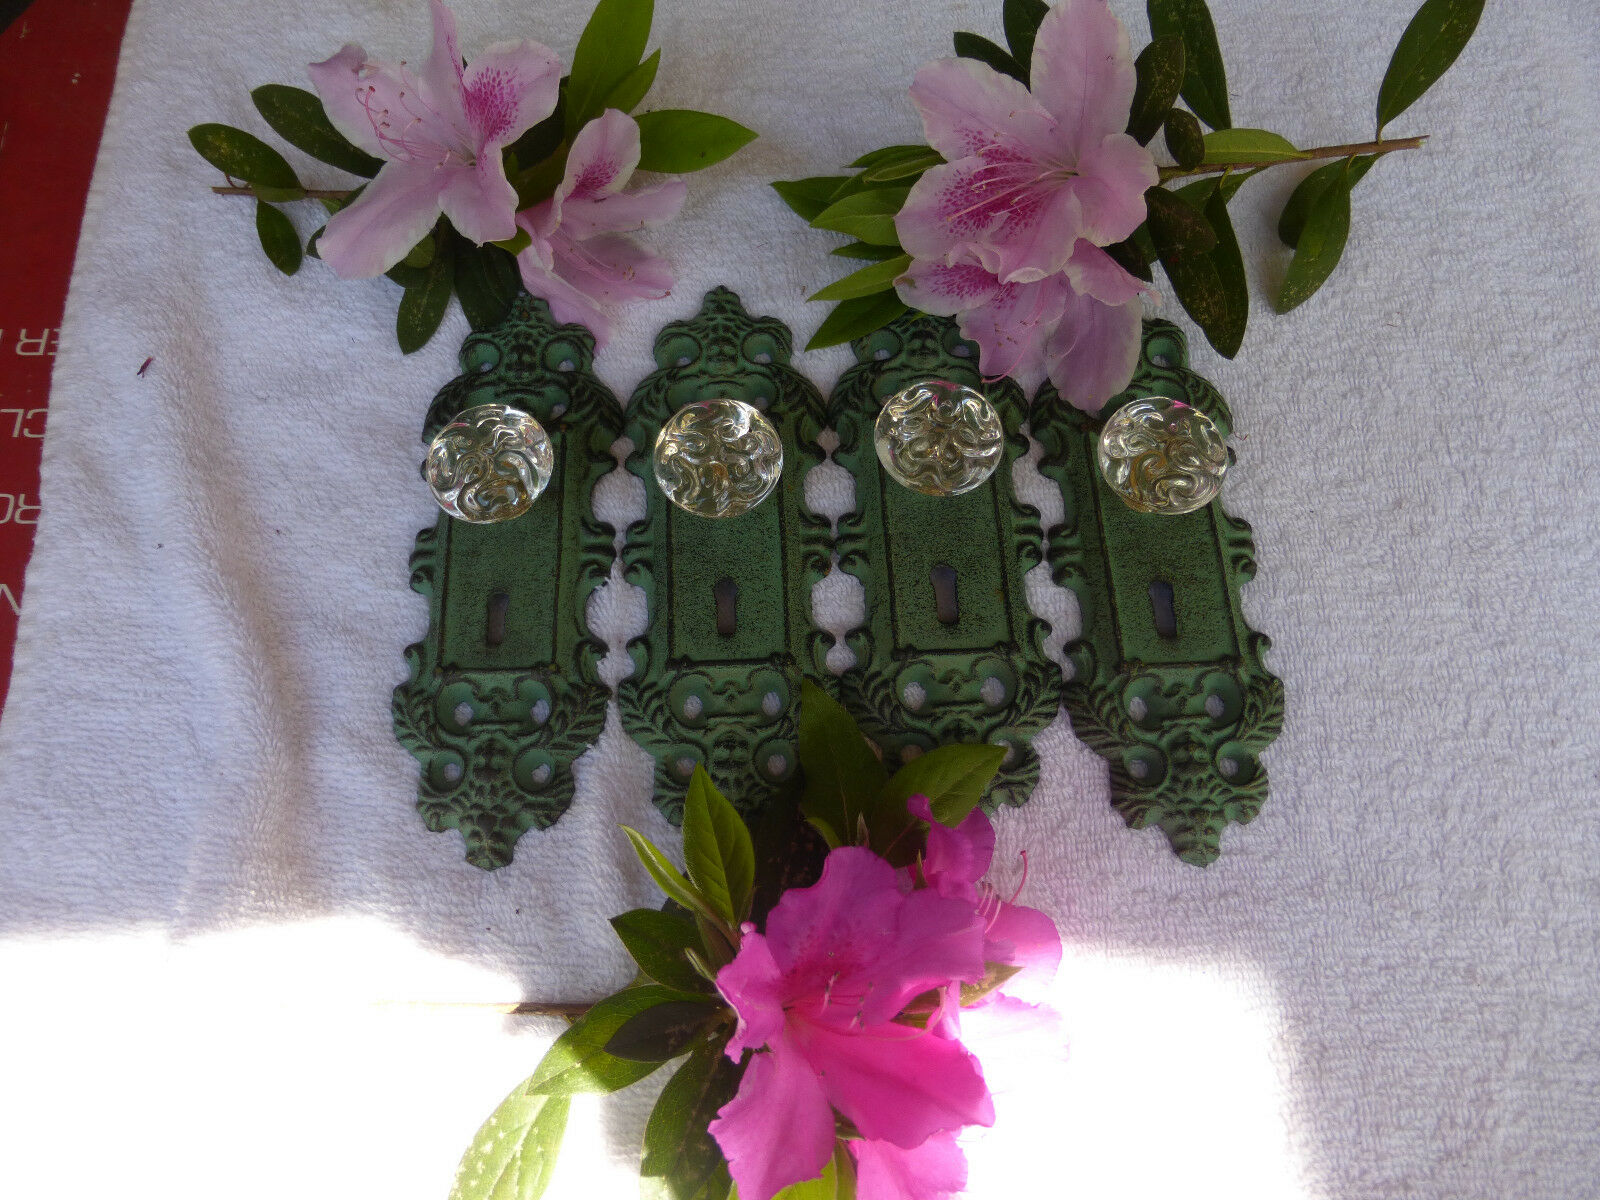 FOUR Cast Iron door plates acrylic glass knobs in antique turquoise/gold